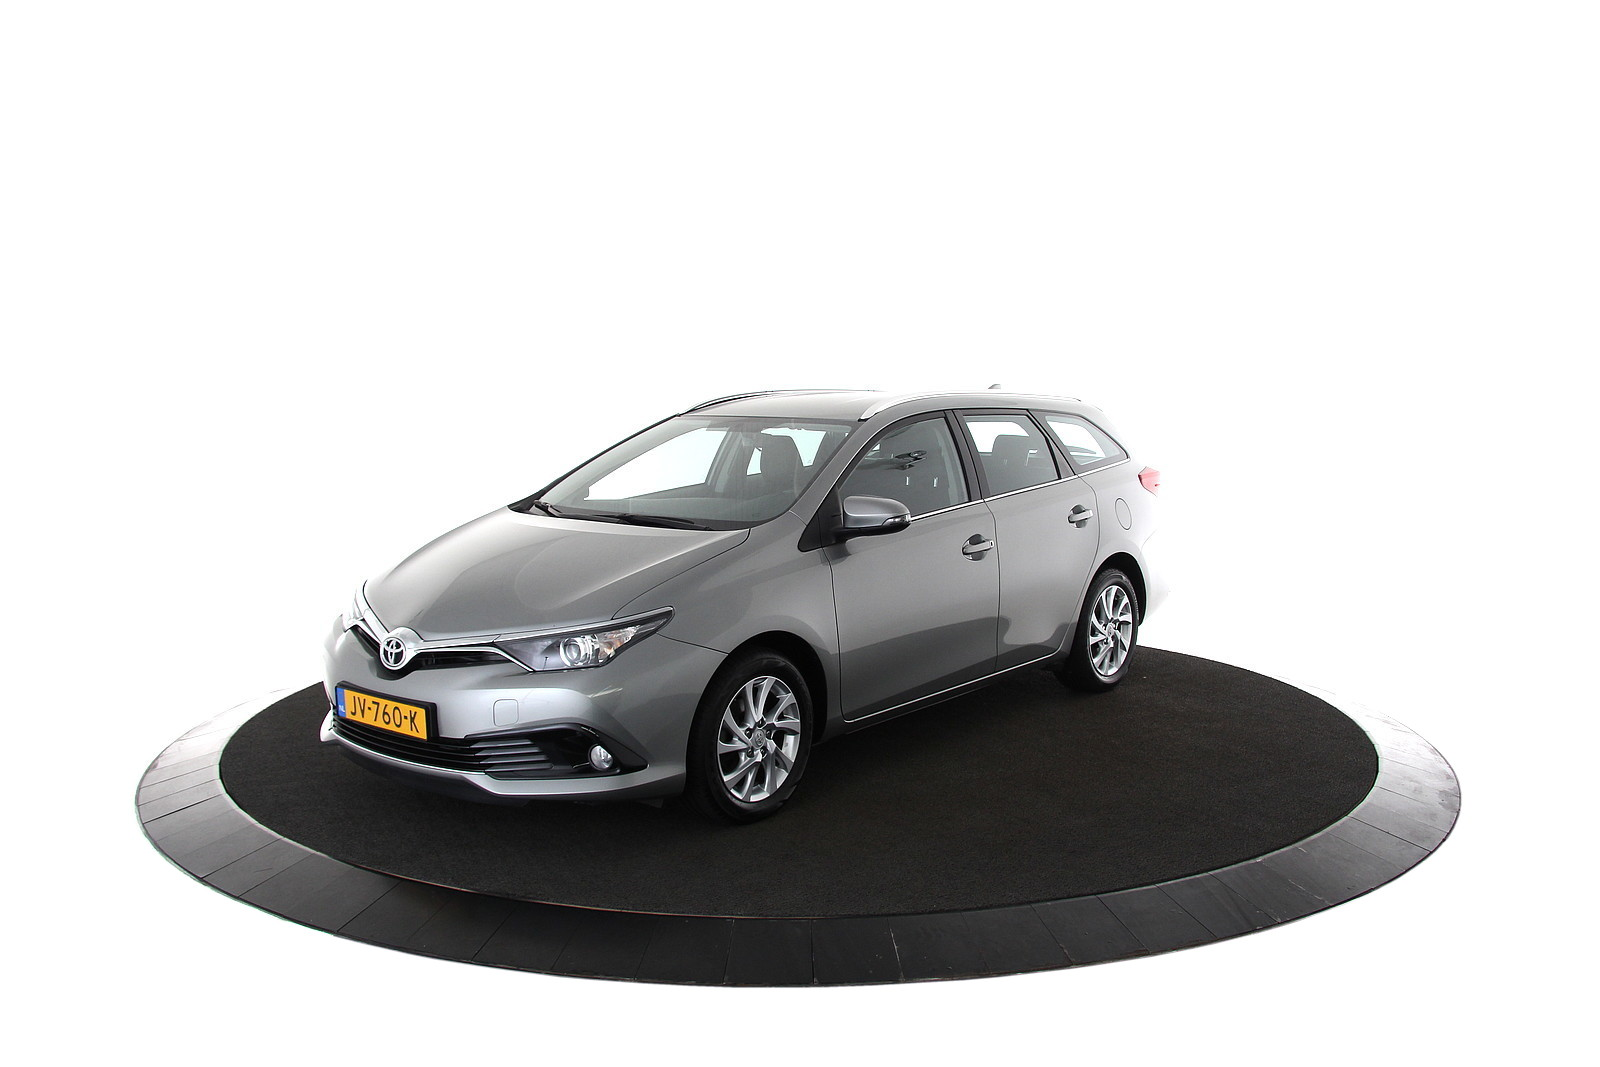 Toyota Auris Touring Sports 1.2T Aspiration Limited